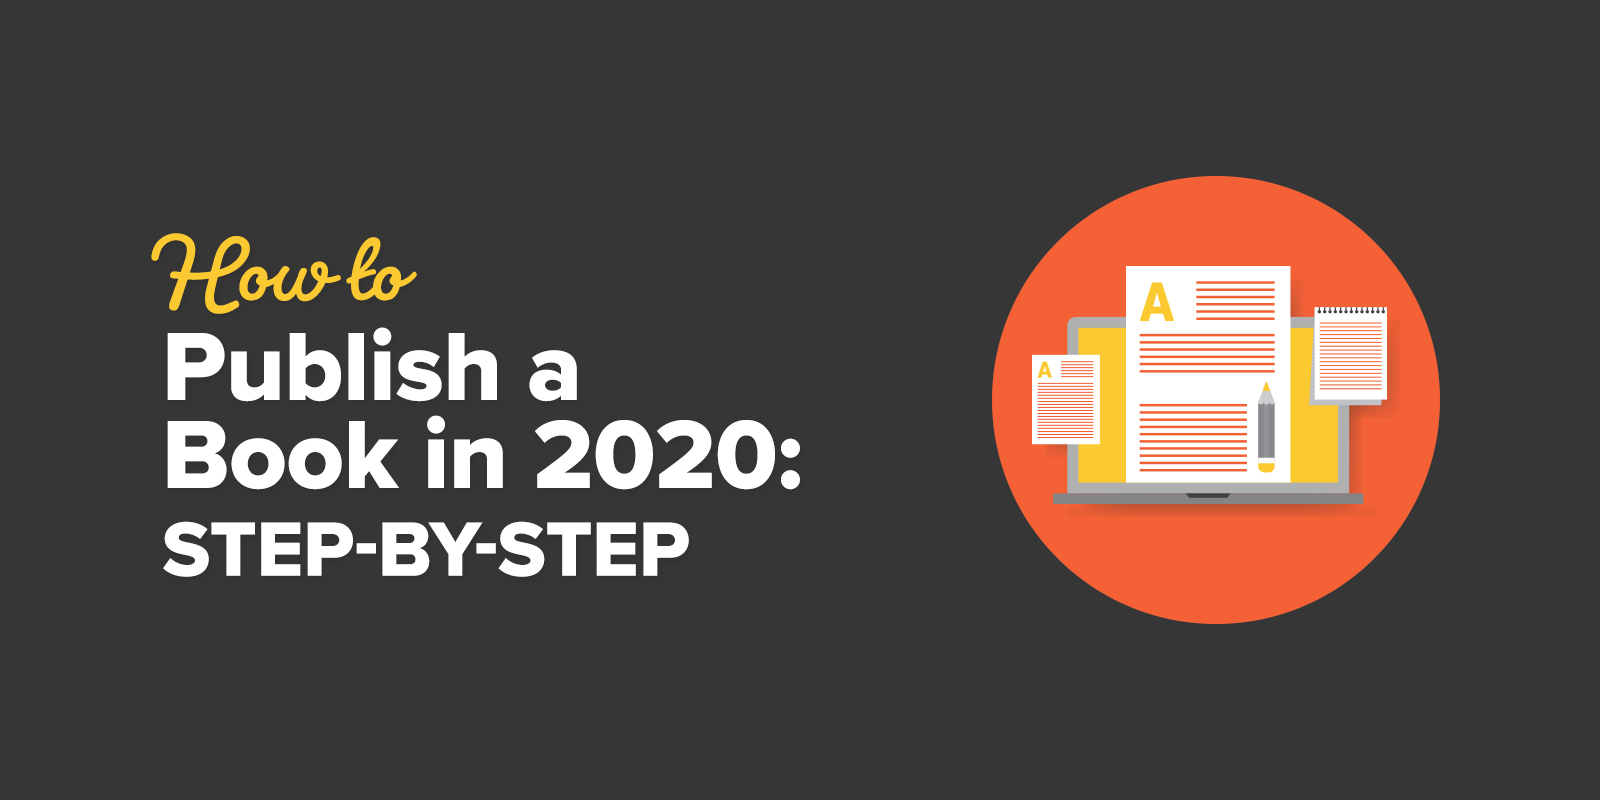 How to Publish a Book in 2020: Step-by-Step